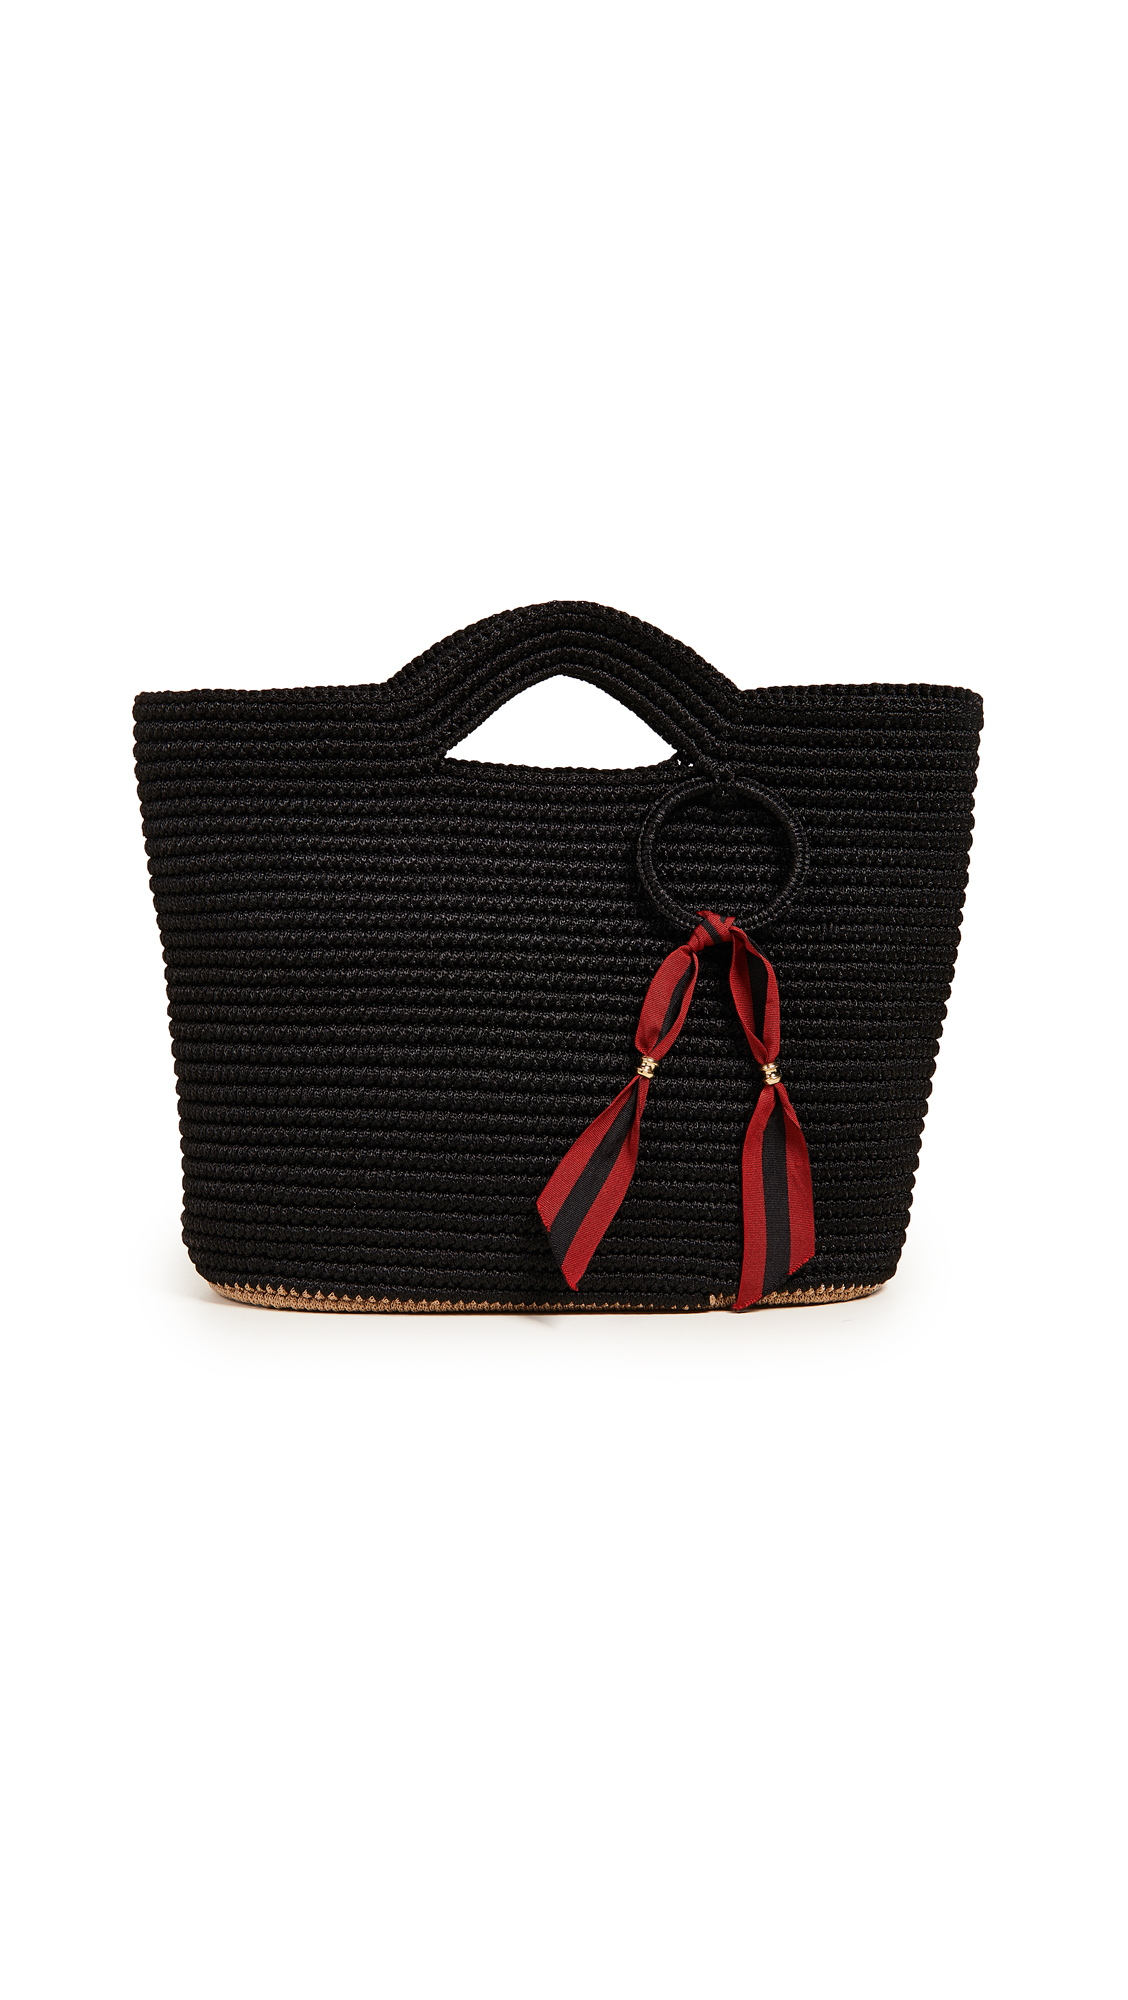 SOFT HANDLE TOTE